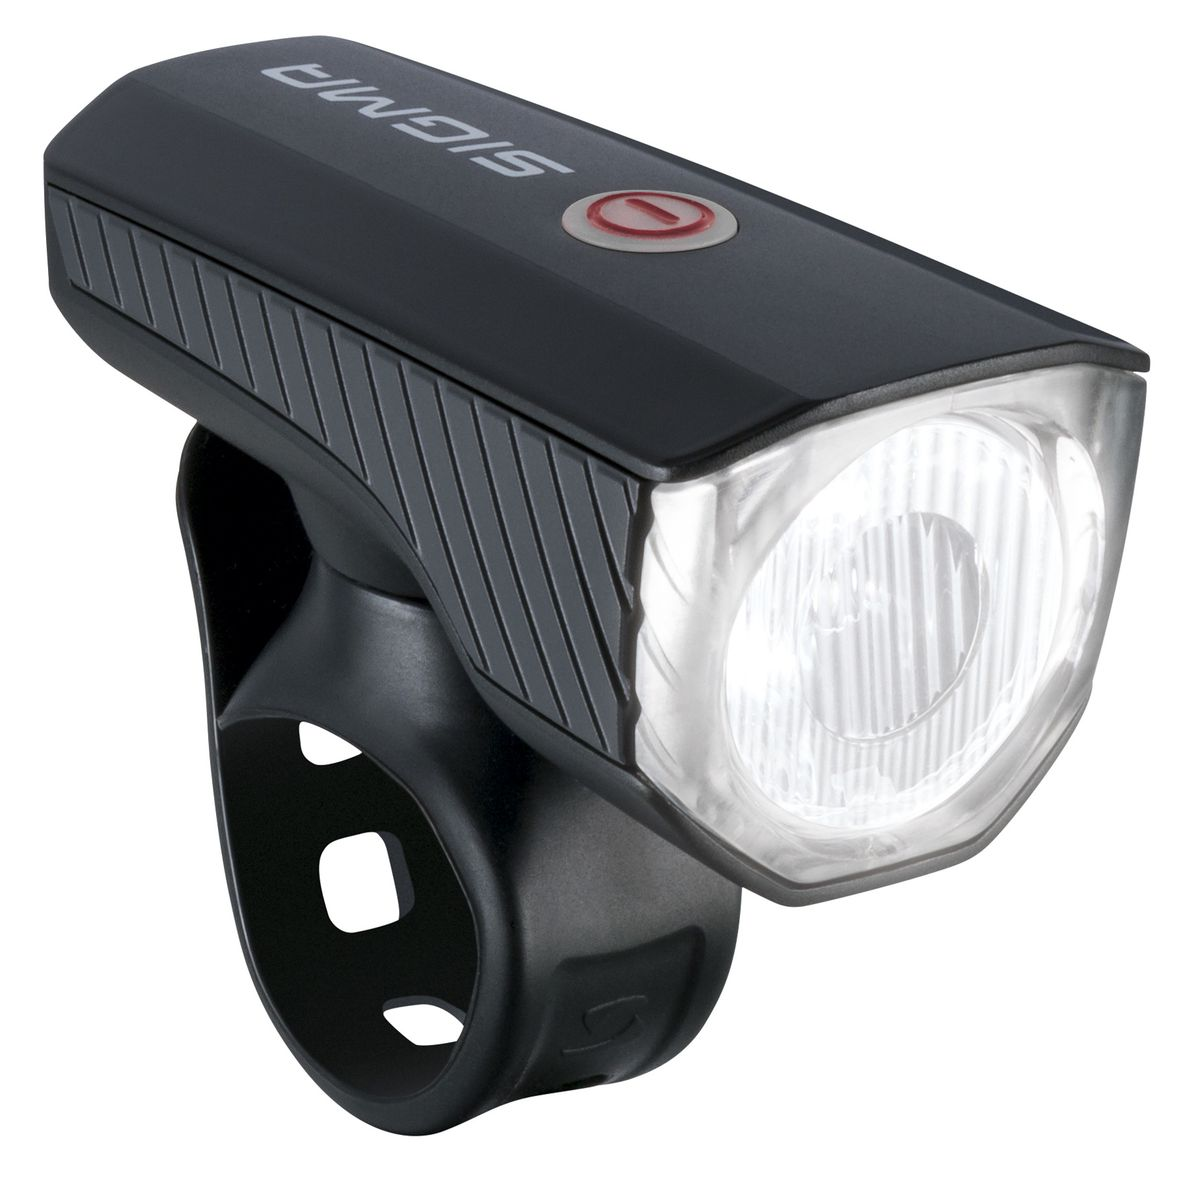 MPP Aura 40 USB battery-powered front light